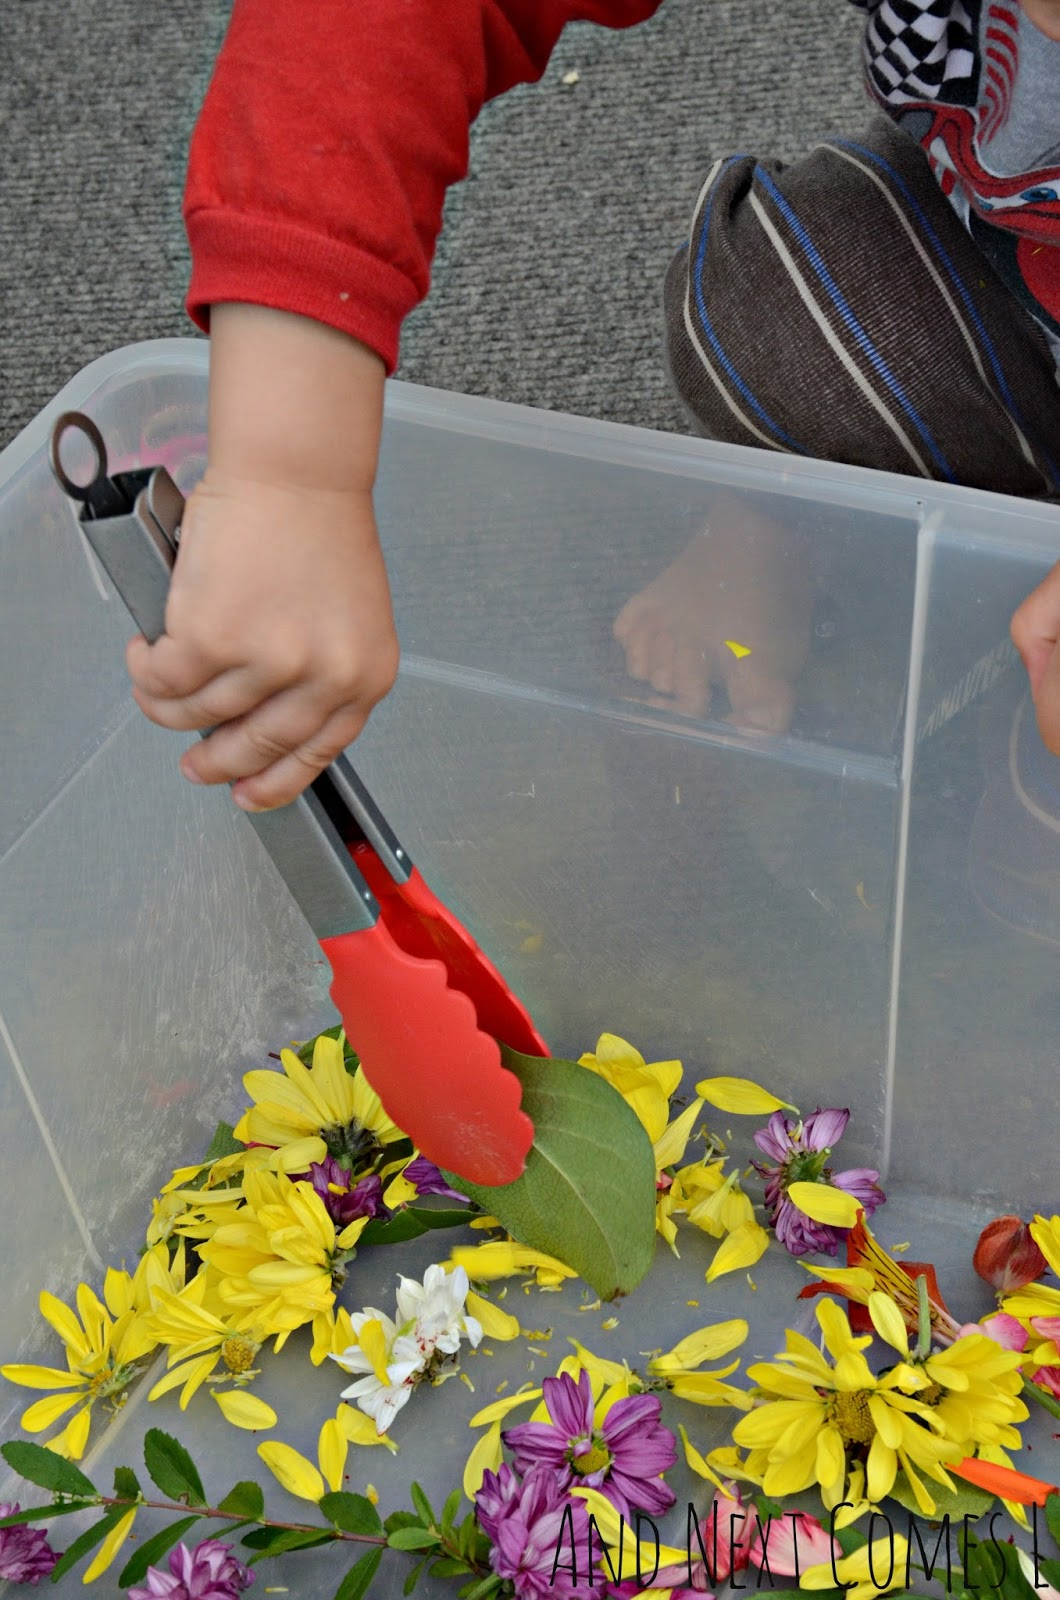 Practice fine motor skills with wilted flowers from And Next Comes L